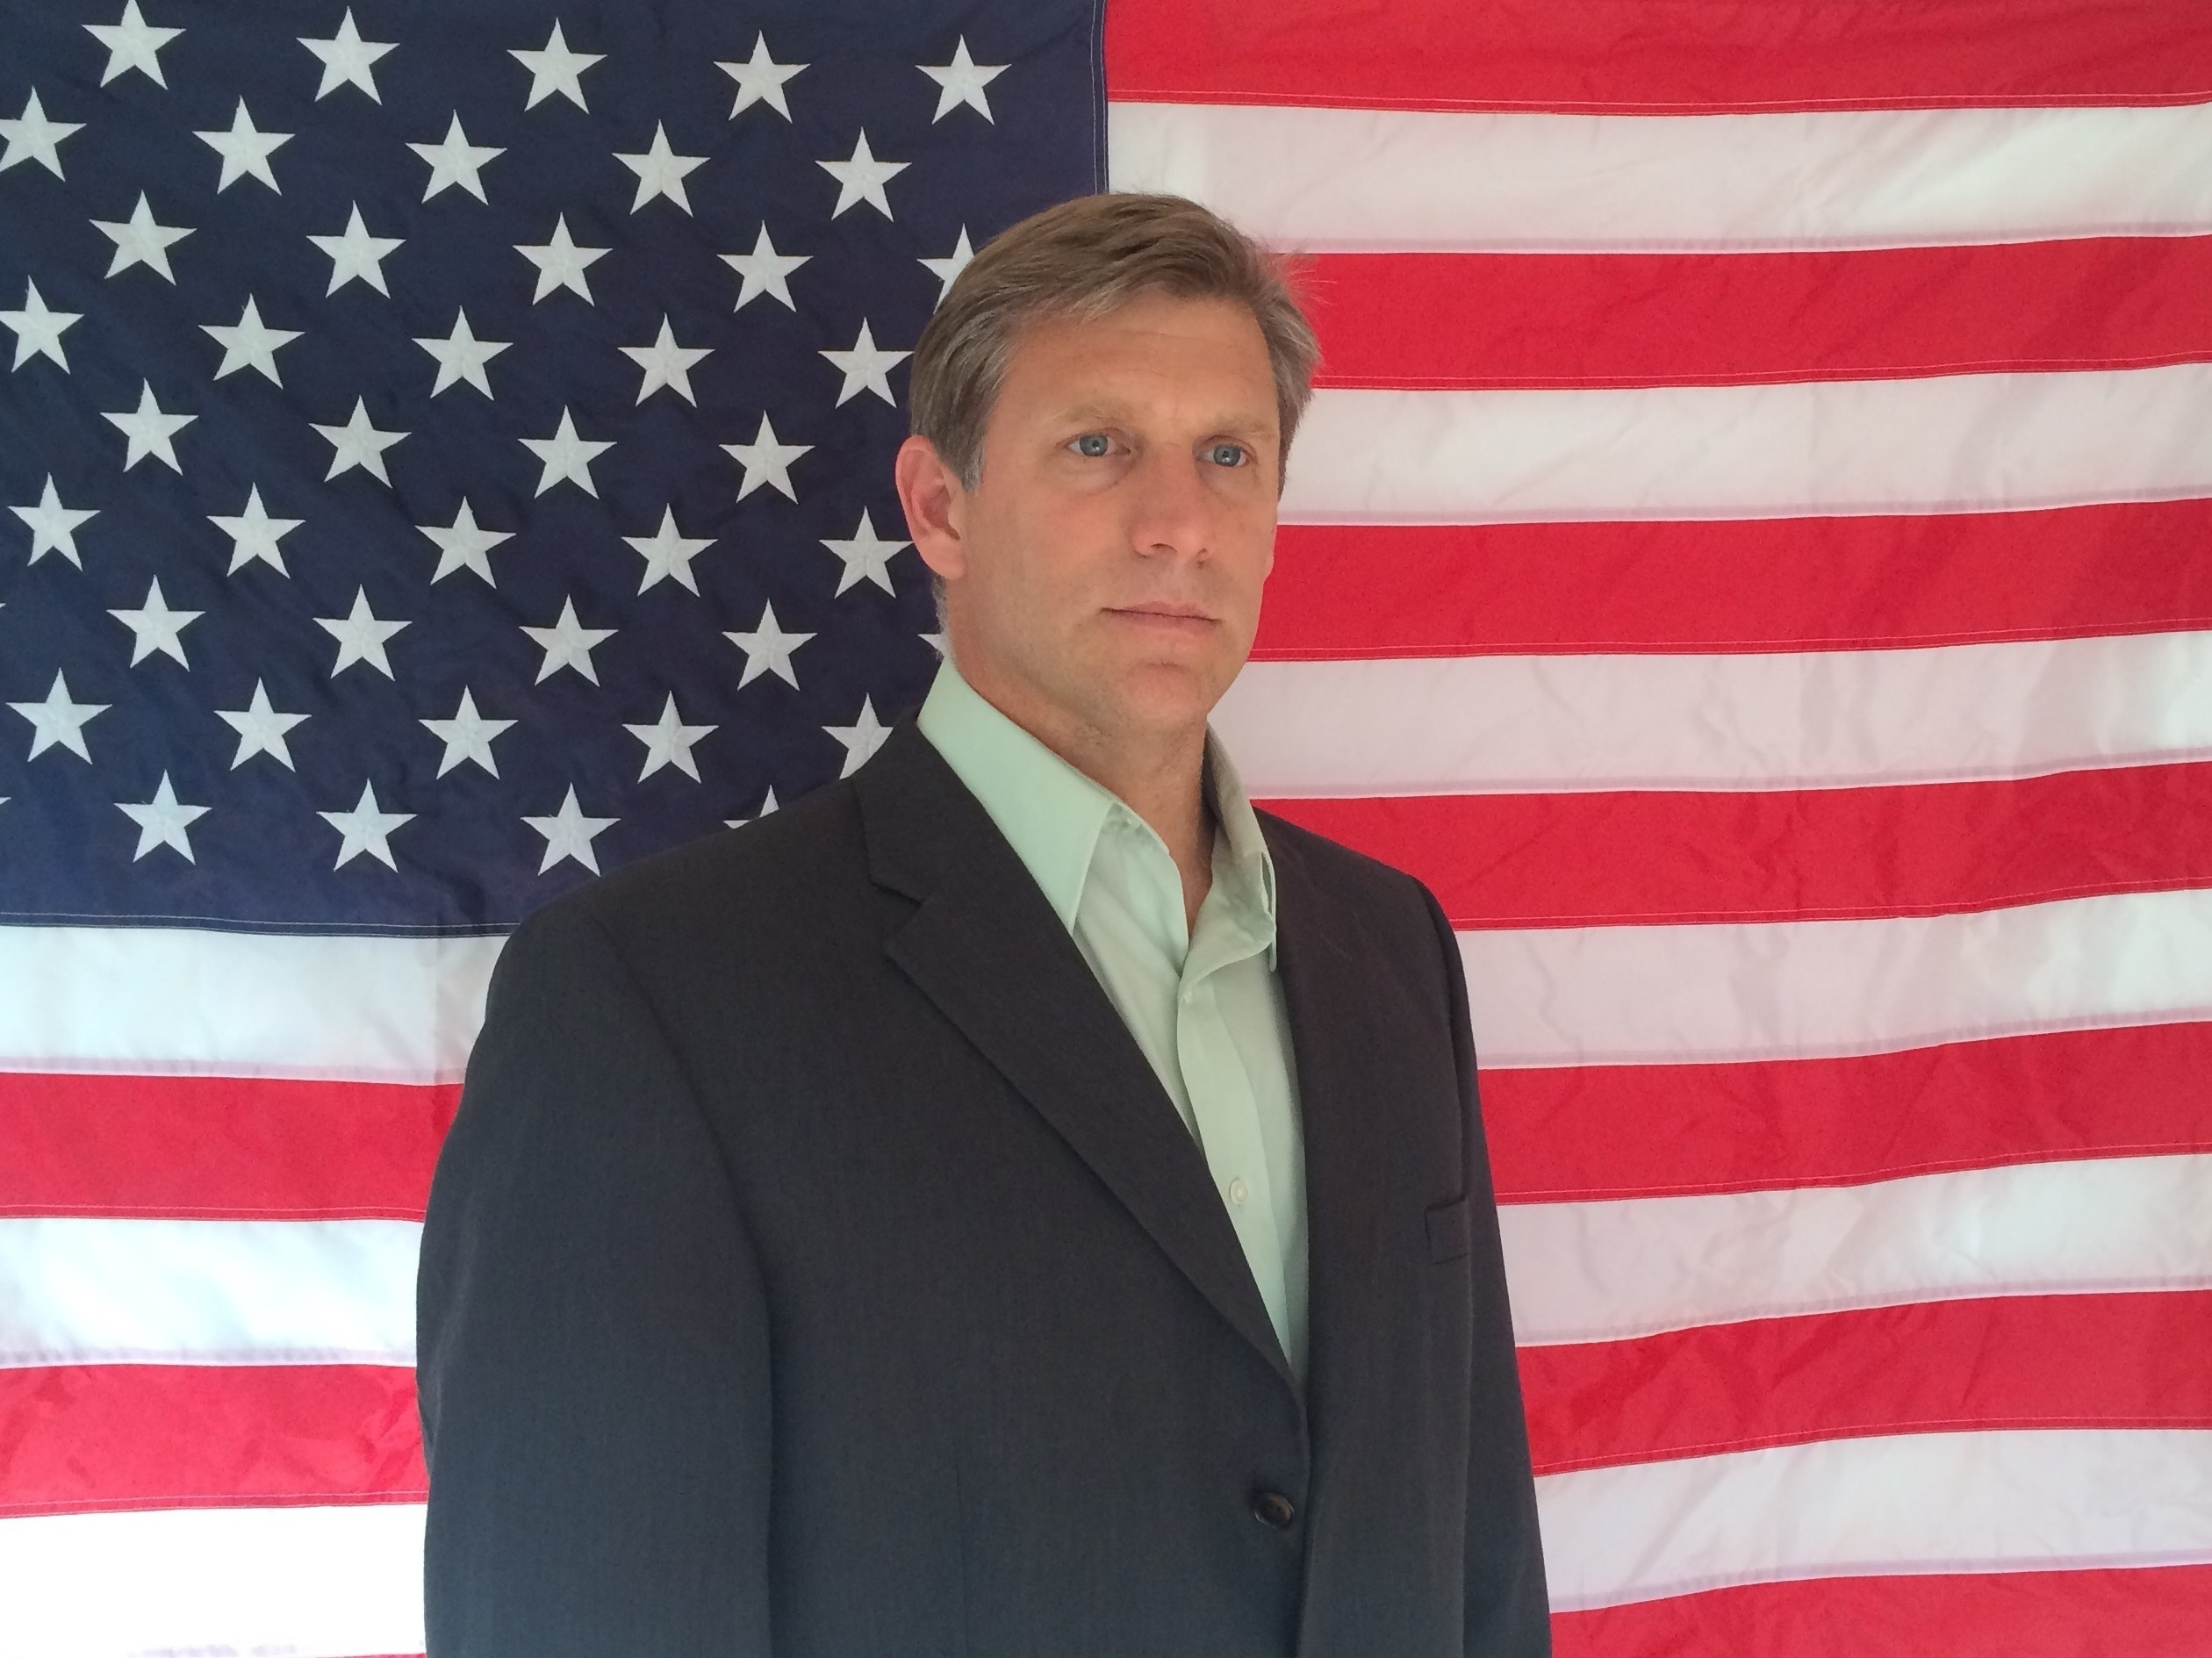 Transhumanist Zoltan Istvan 'Can't Wait' to Cut Off His Arm